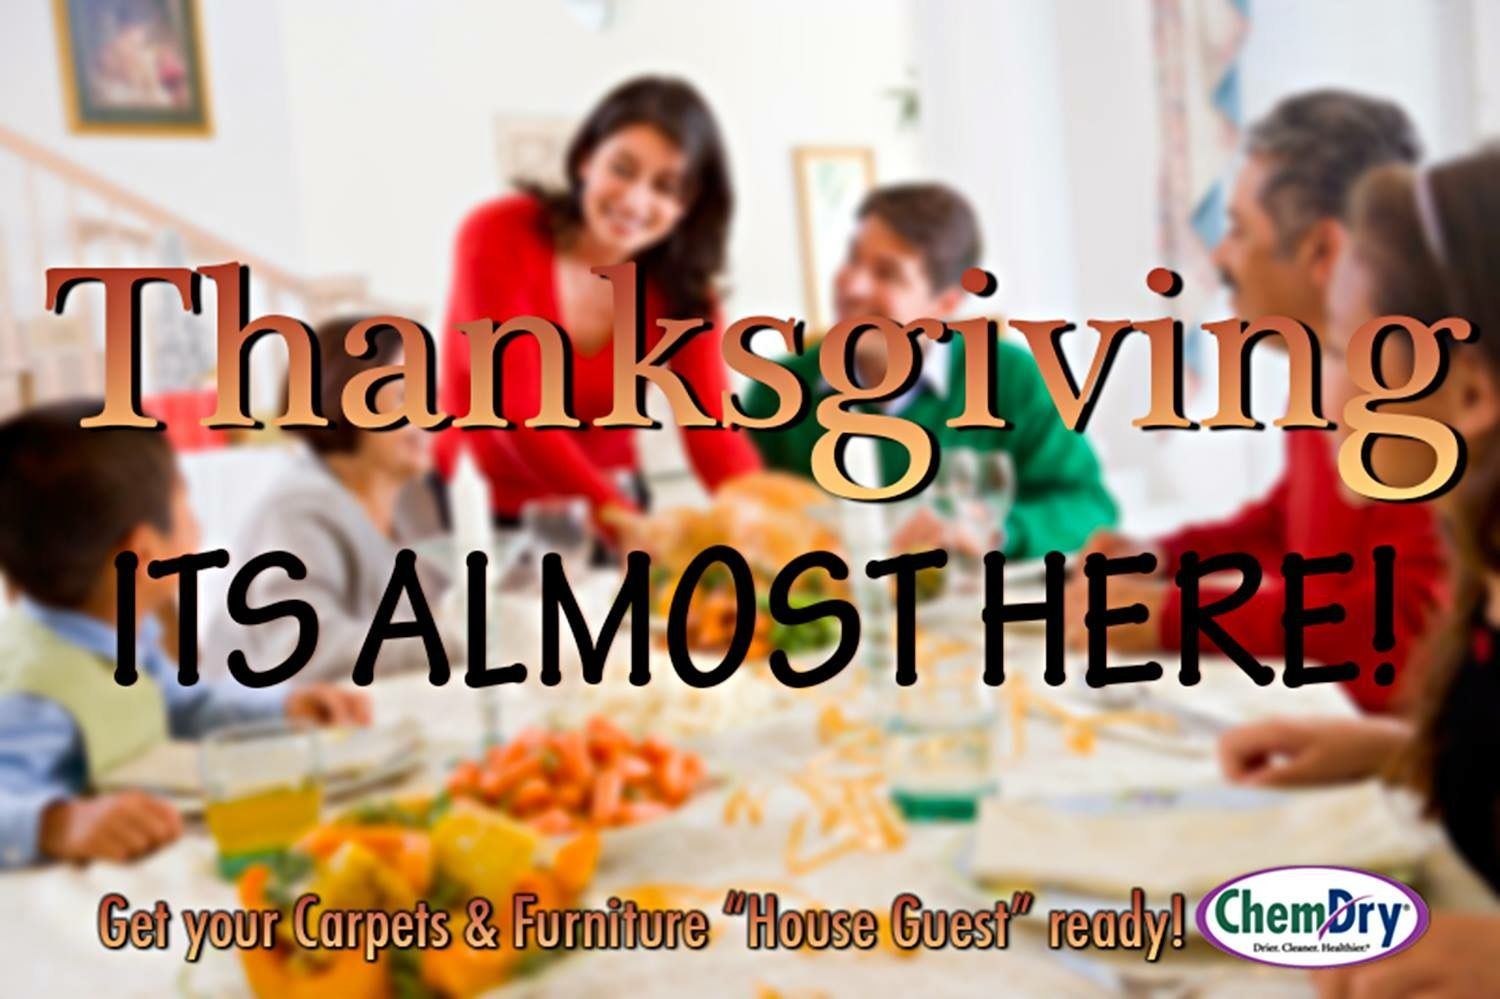 Prepare For Thanksgiving Dinner With A Deep Clean Of Your Carpets And  Upholstery And Area Rugs, As Well As Your Granite Countertops!